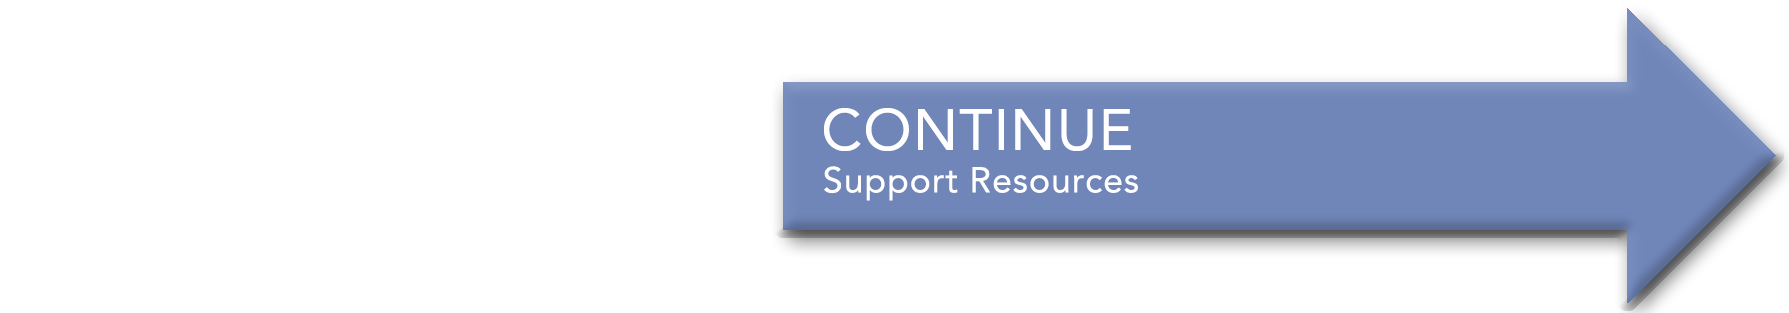 Continue to Support Resources